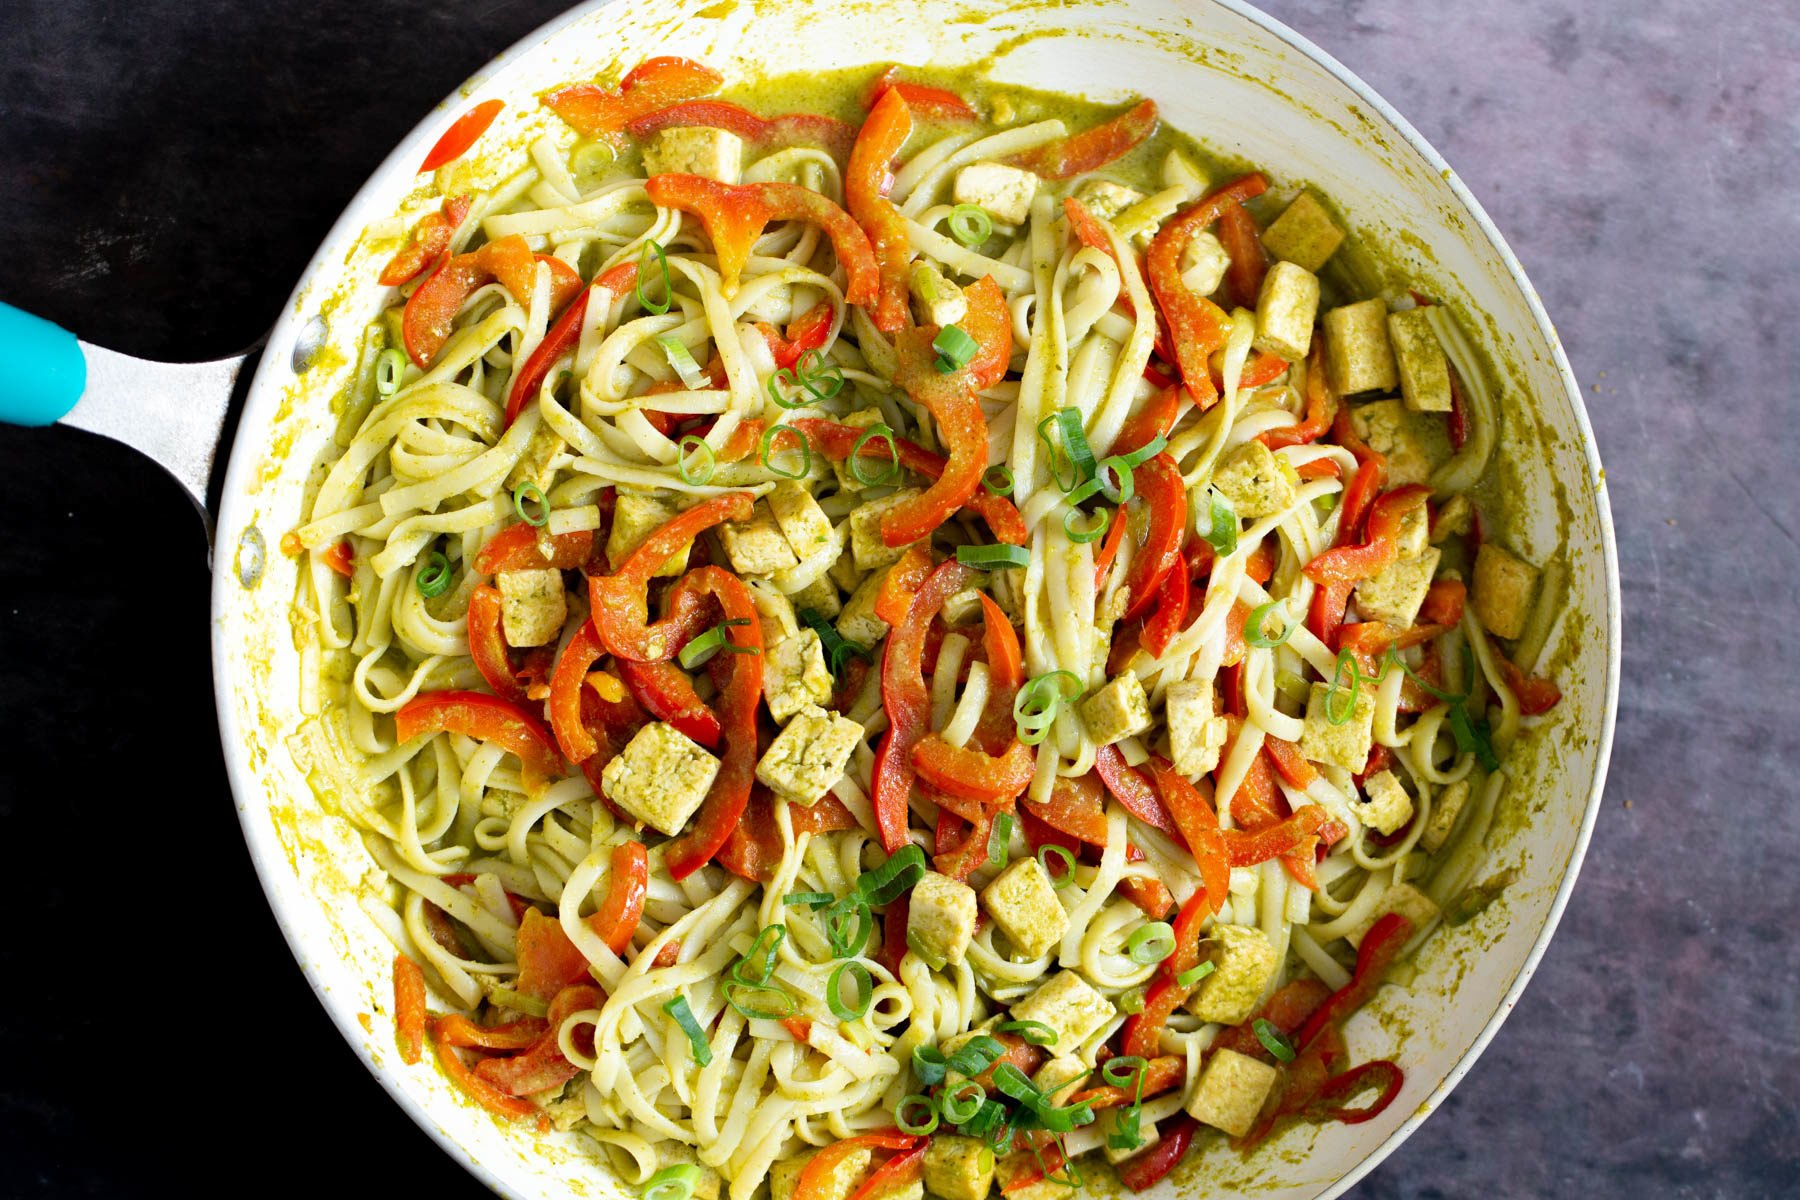 rice noodles being tossed in a pan with sauteed veggies, tofu and green curry sauce